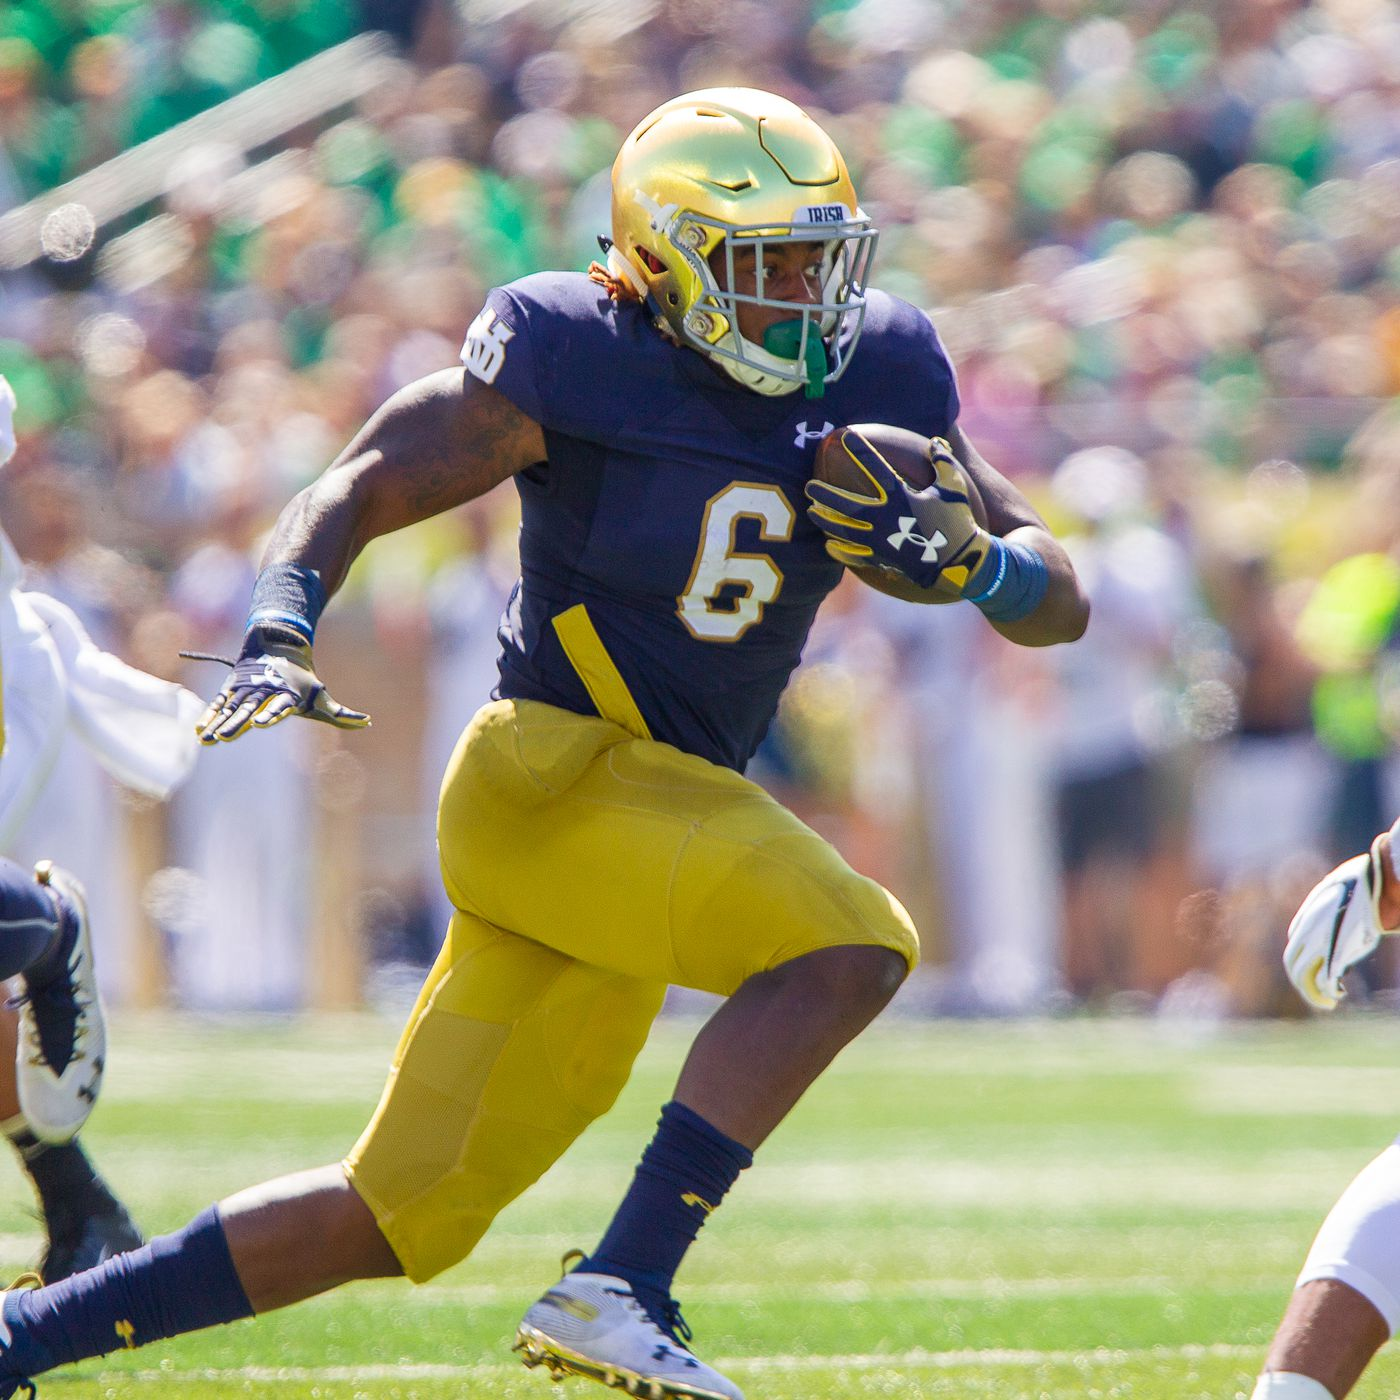 This Guy Plays Notre Dame Football 6 Tony Jones Jr Running Back One Foot Down